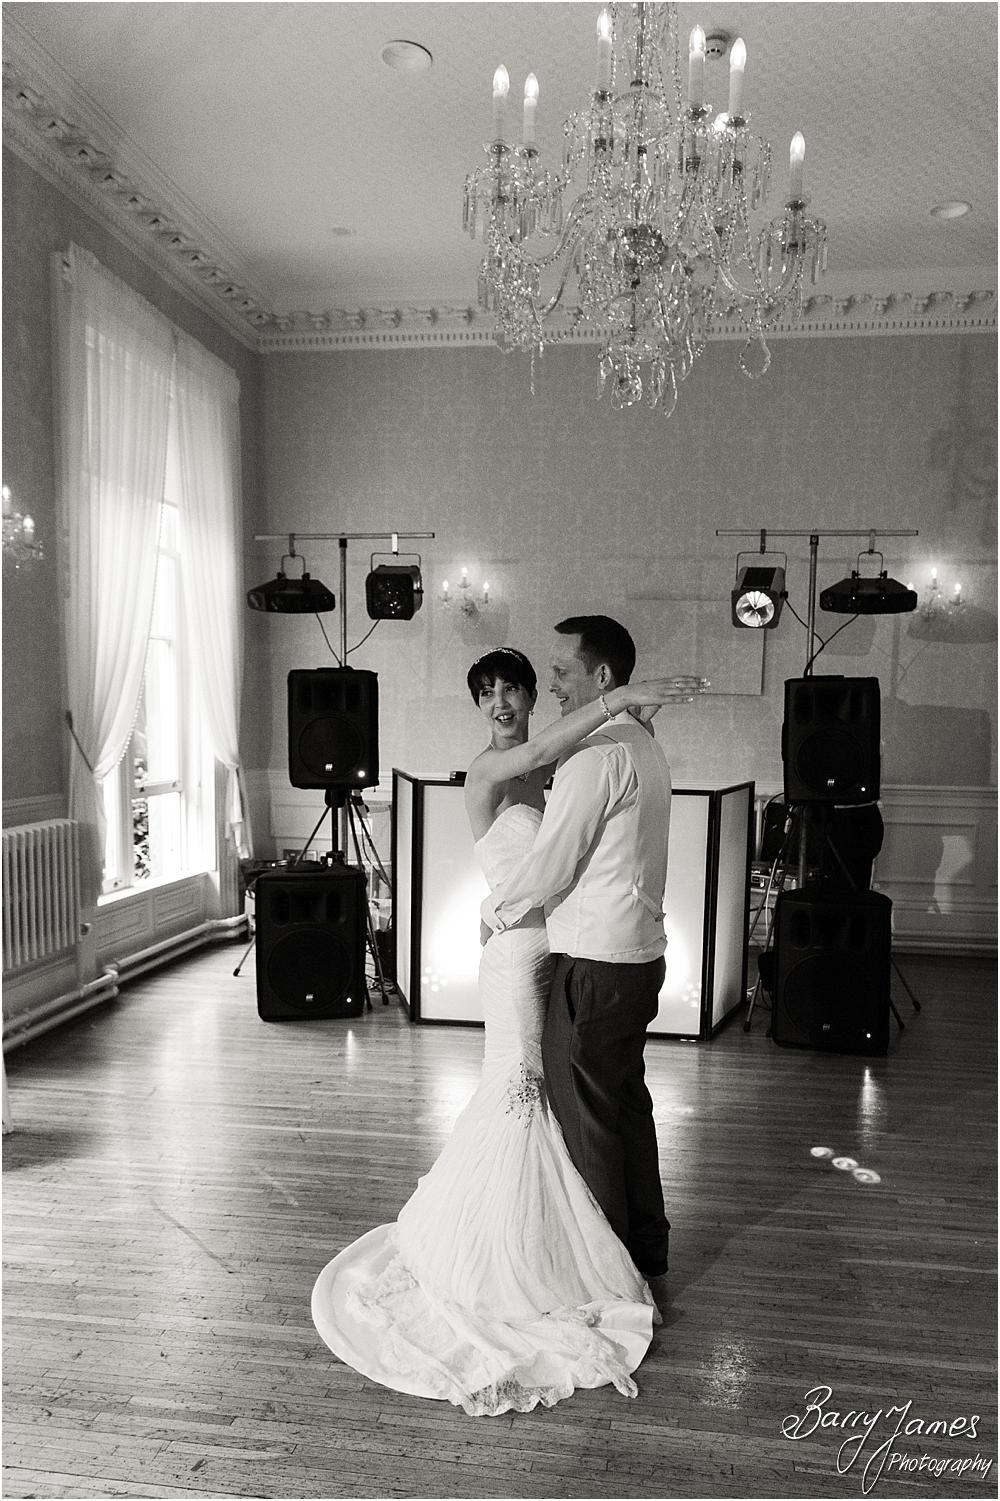 Capturing the beautiful first dance at Rodbaston Hall in Penkridge by Walsall Wedding Photographer Barry James